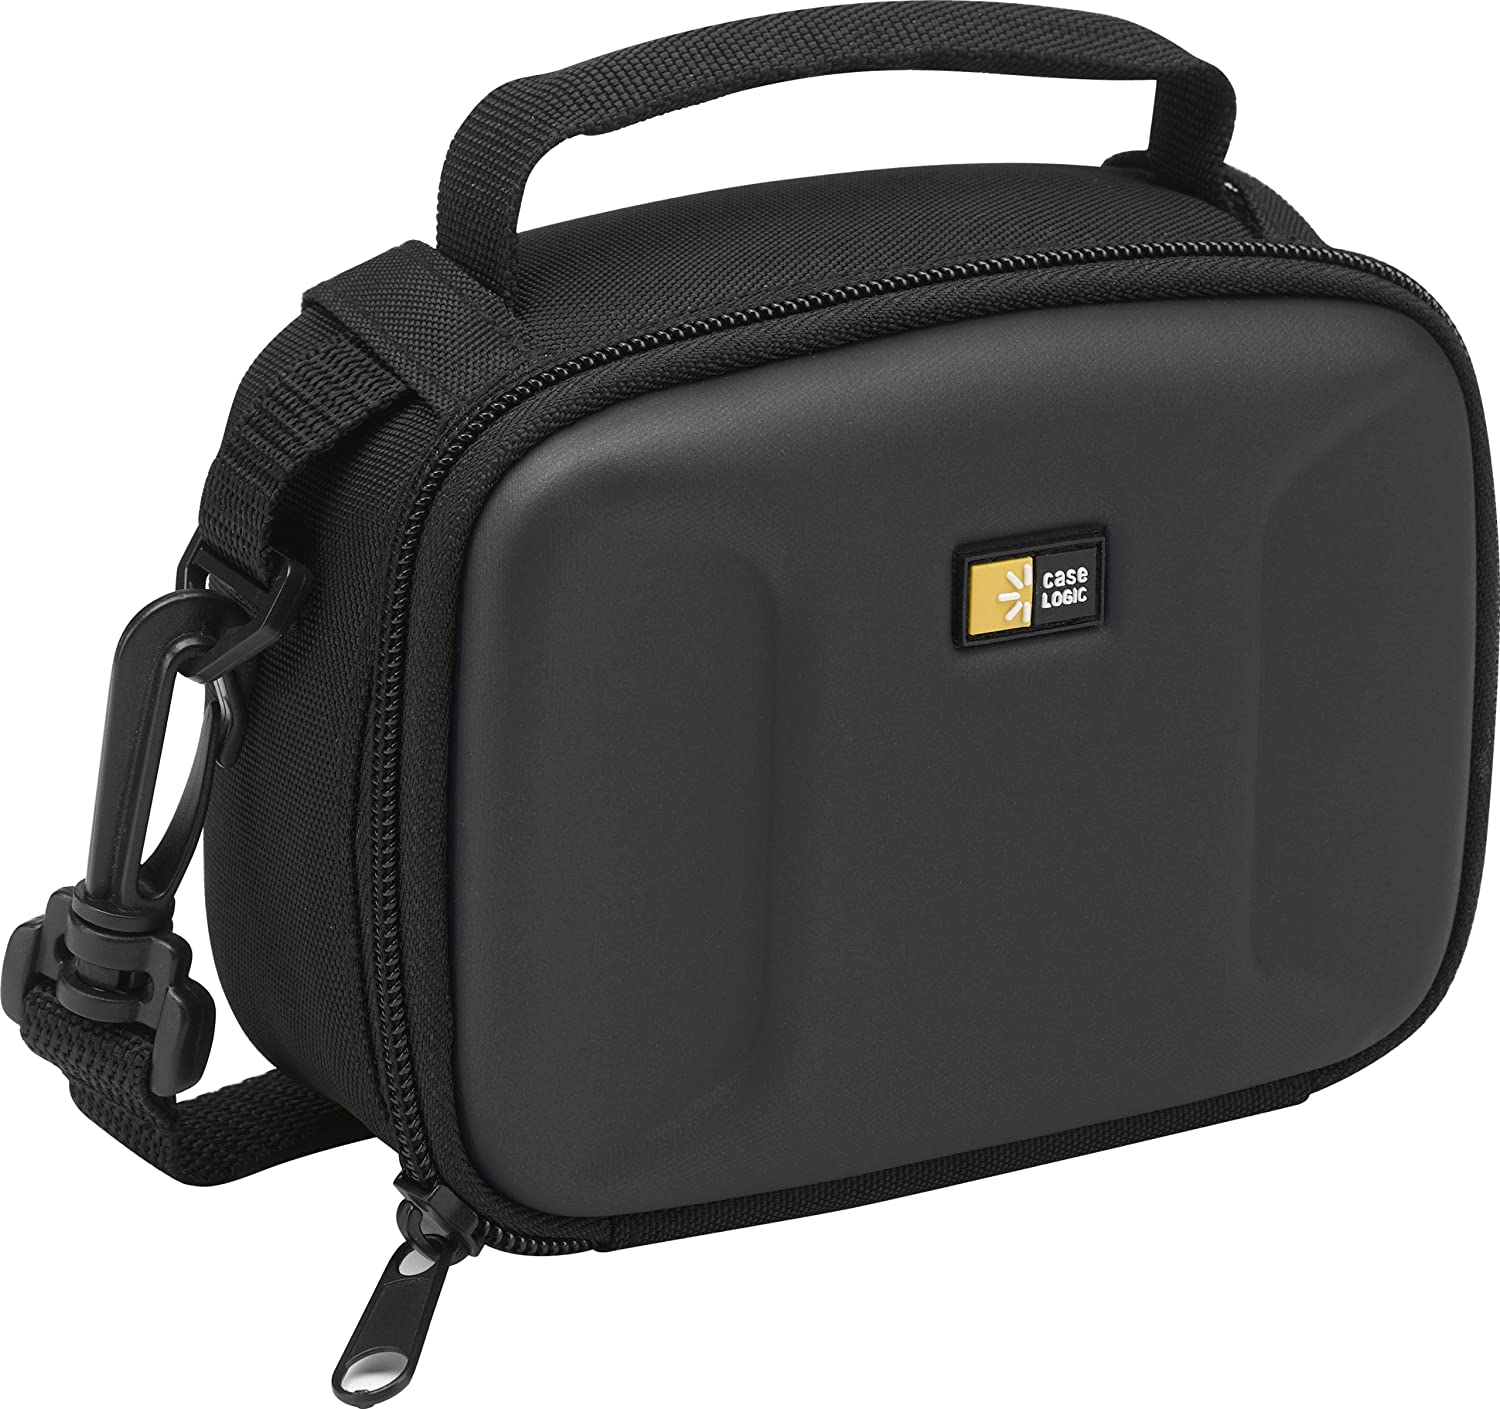 Black Case Logic MSEC-4 EVA Molded Camcorder Case